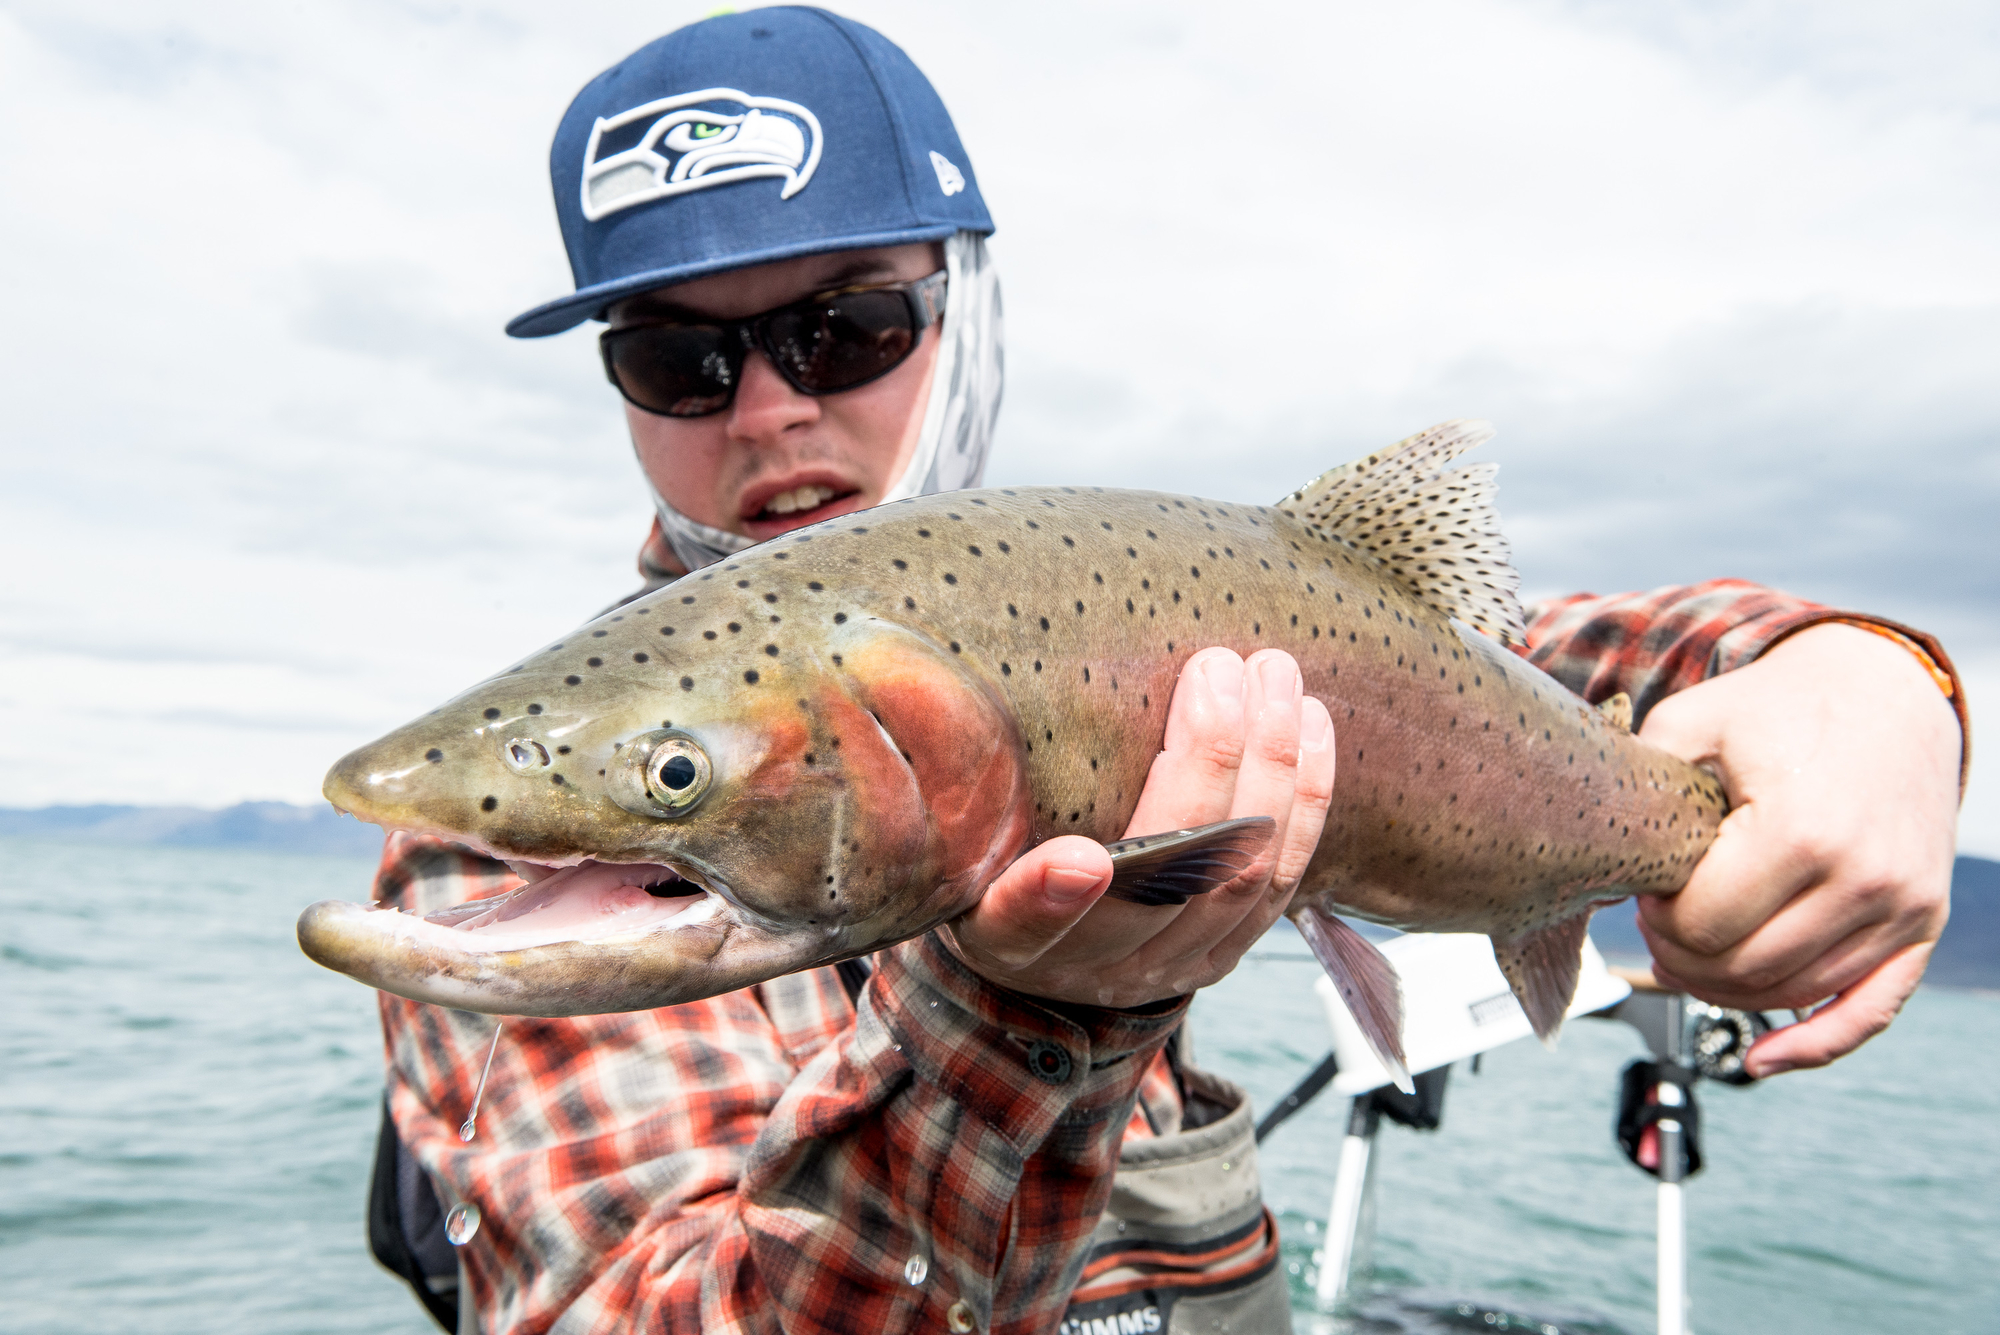 (1/2) The Lahontan Cutthroat are a fine looking species, and pose well for the camera. When fishing sinking lines, it's important to keep the flies close to the bottom. A weighted front fly can help get your leader down when using foam bugs.